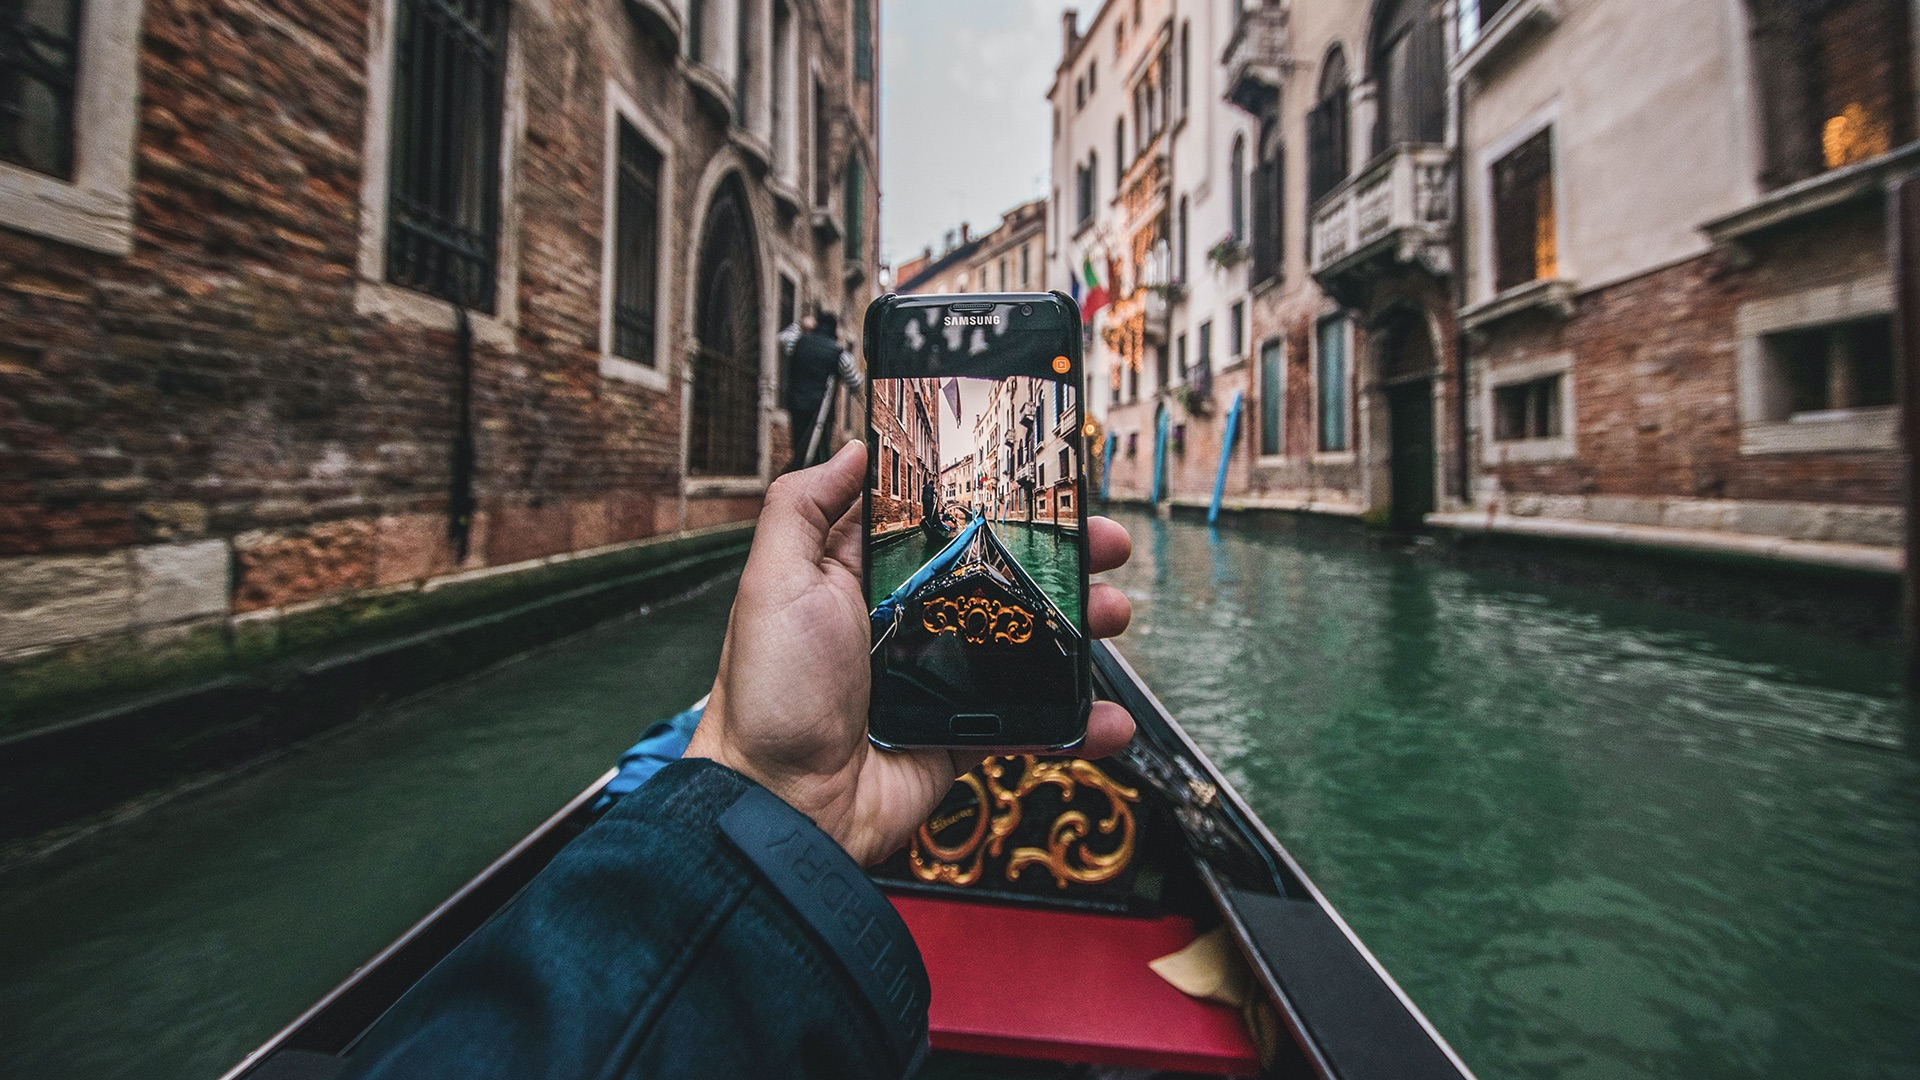 The best types of cell phone pics to submit to Licensing